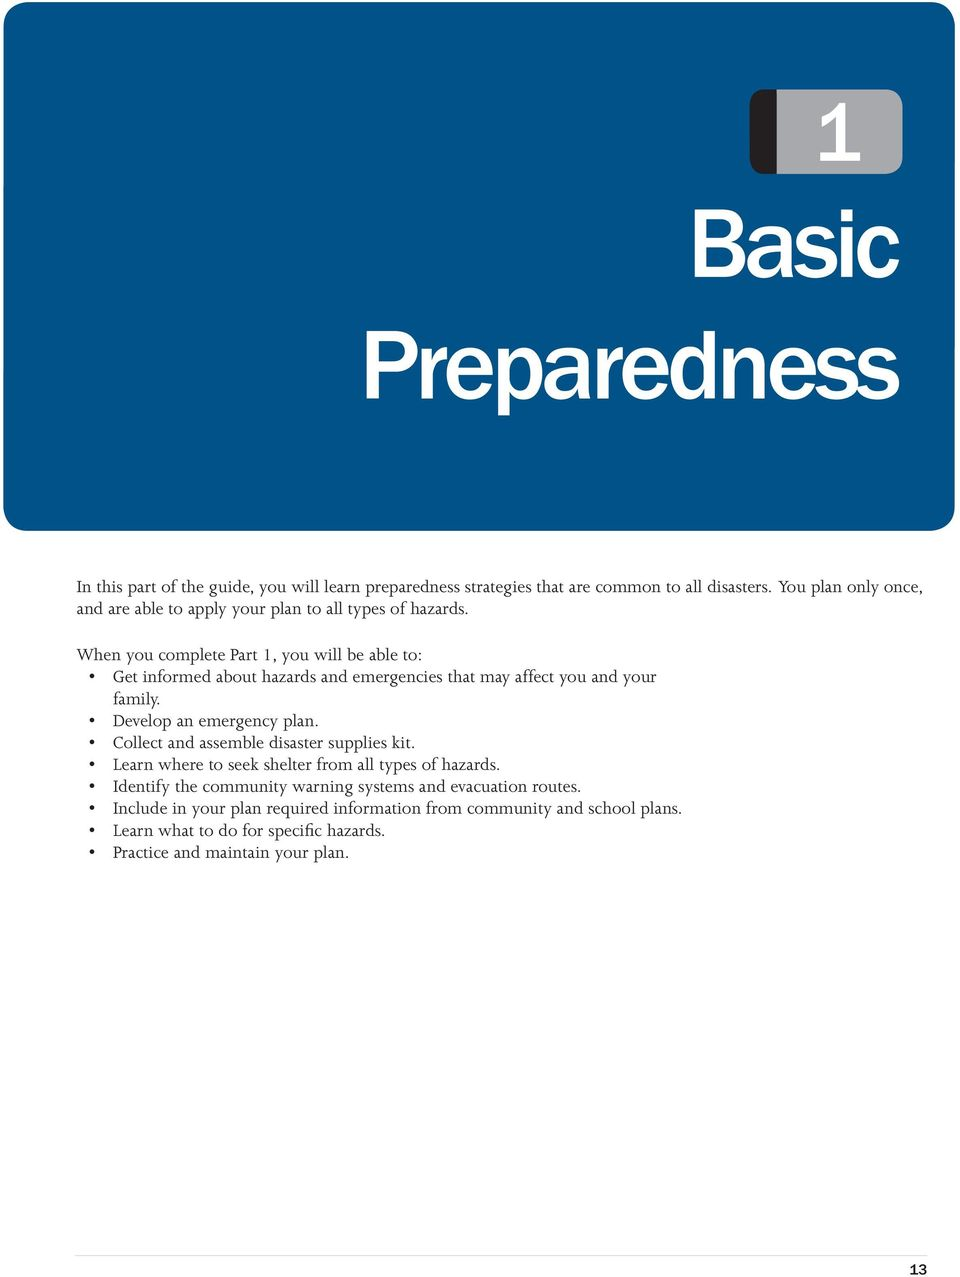 When you complete Part 1, you will be able to: Get informed about hazards and emergencies that may affect you and your family. Develop an emergency plan.